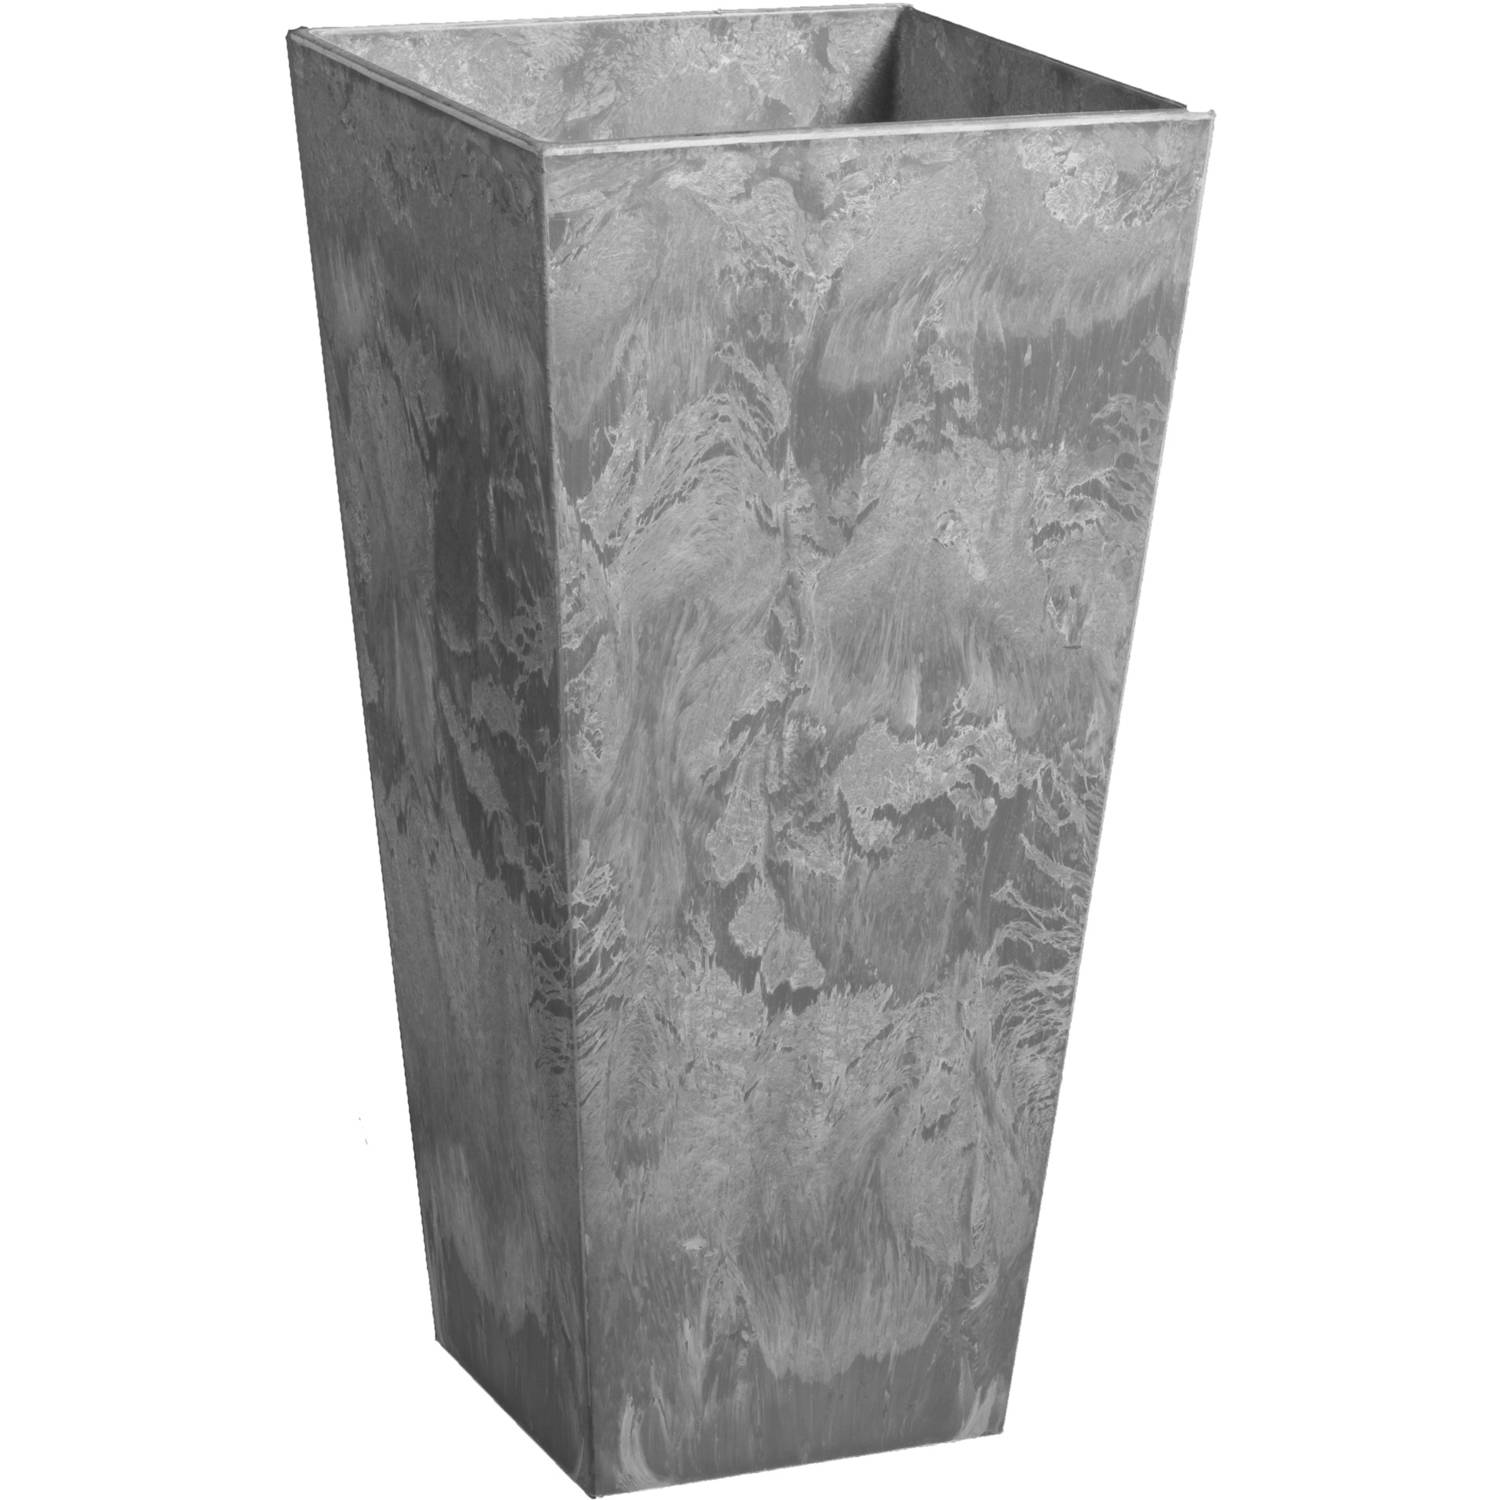 "Novelty 27.5"" Ella Tall Planter by Garden Planters"